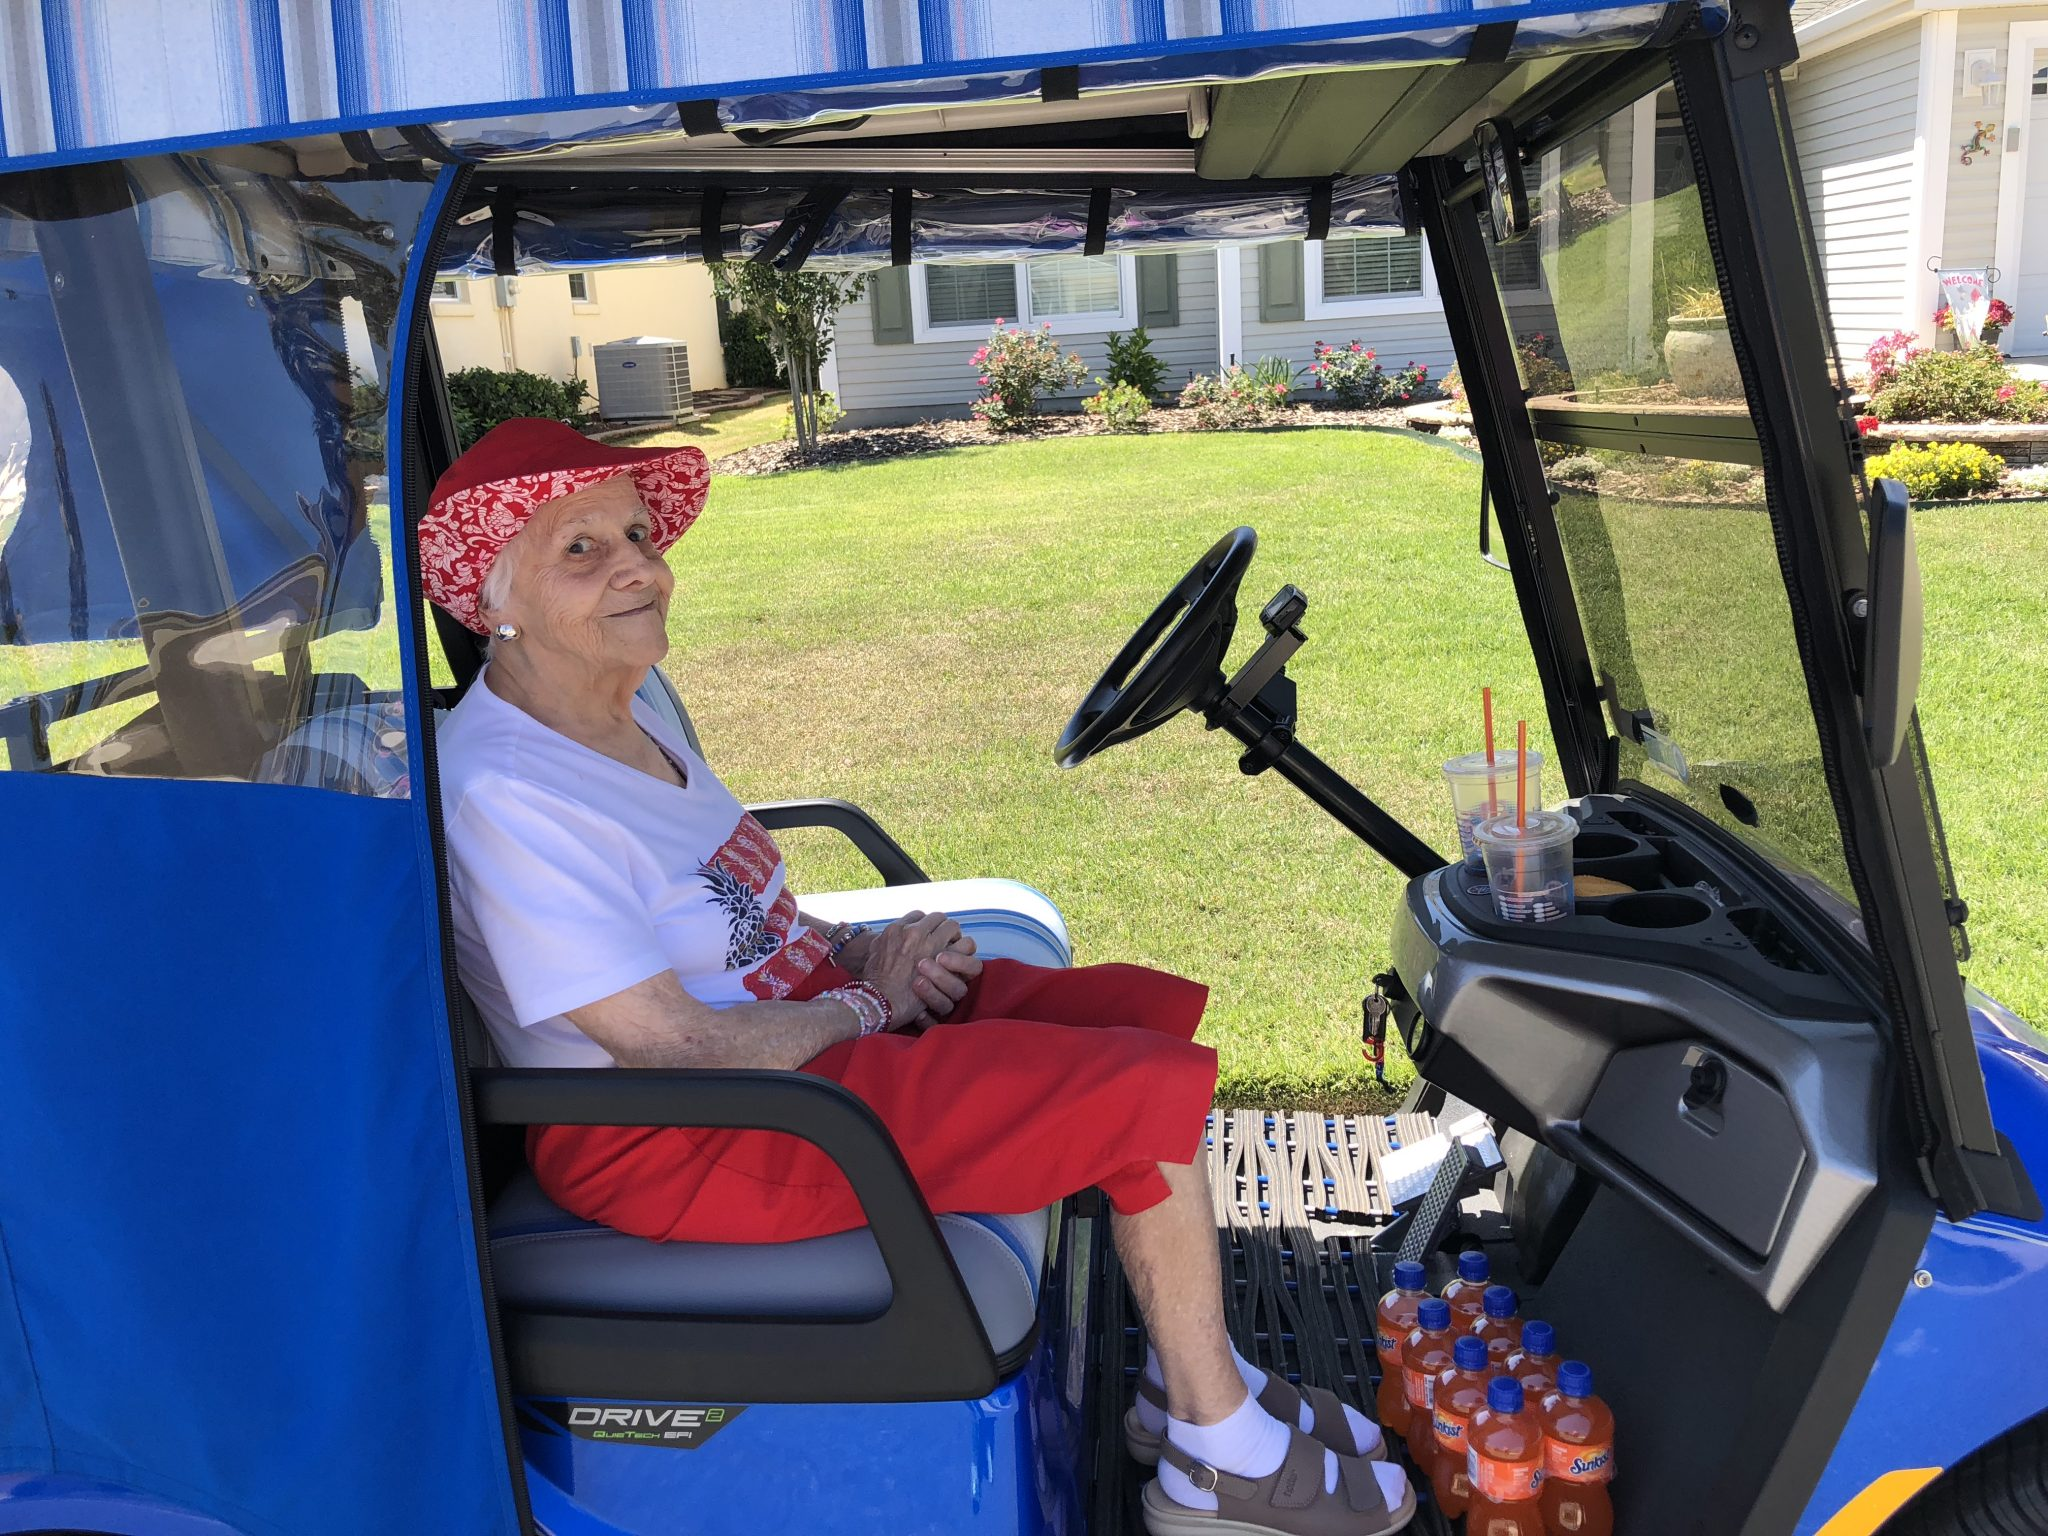 Alice loved riding in the golf cart